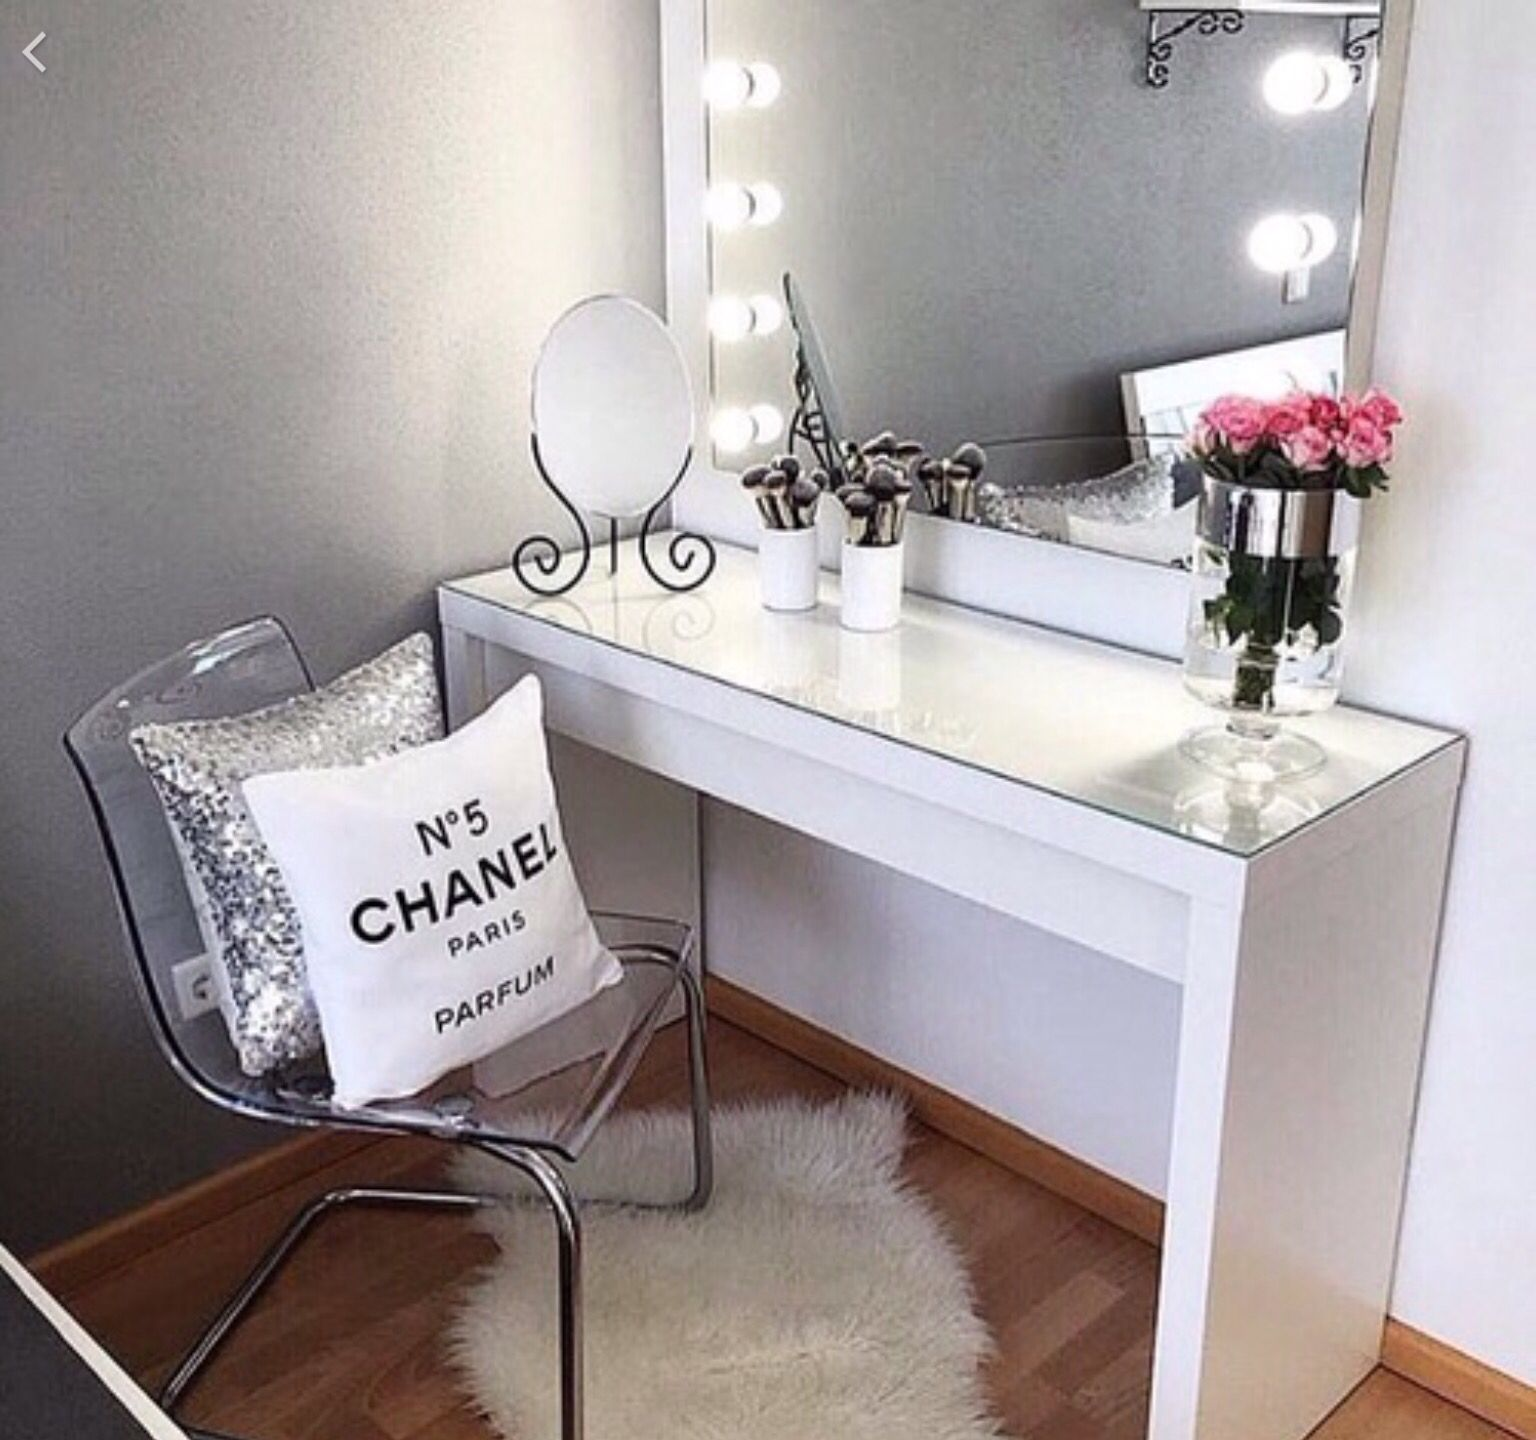 Cute white chanel room makeup table home ideas d for Sala de estar kawaii